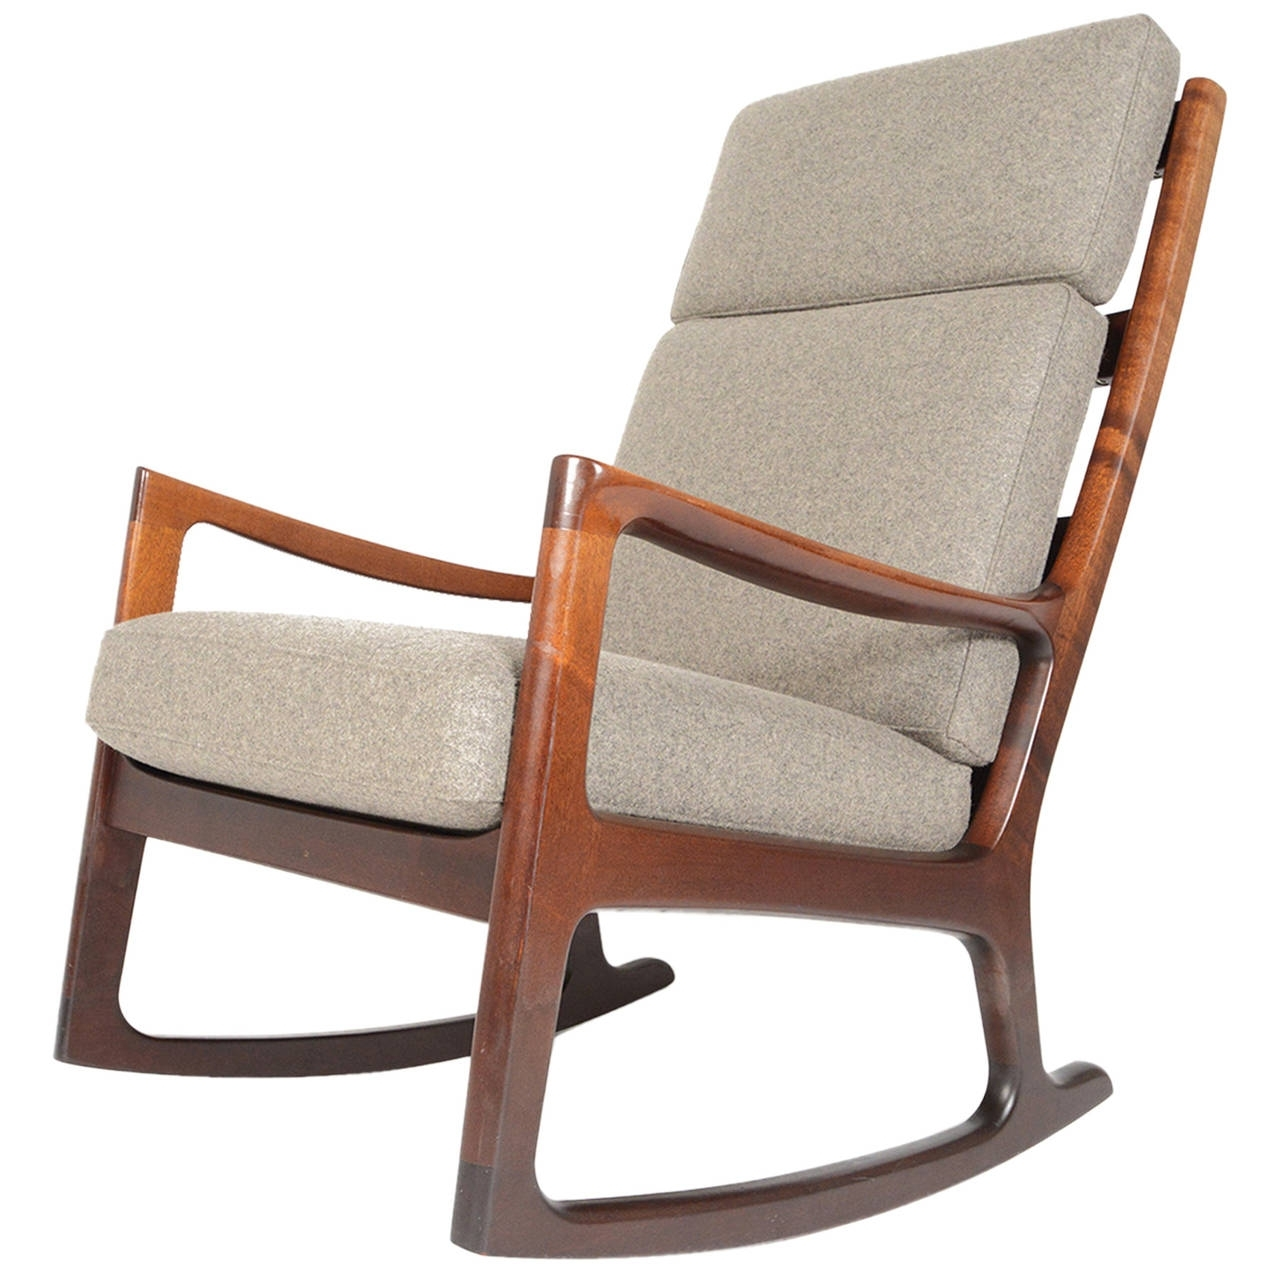 High Back Rocking Chairs Inside Best And Newest Ole Wanscher Mahogany Highback Rocking Chair At 1Stdibs (Gallery 1 of 20)